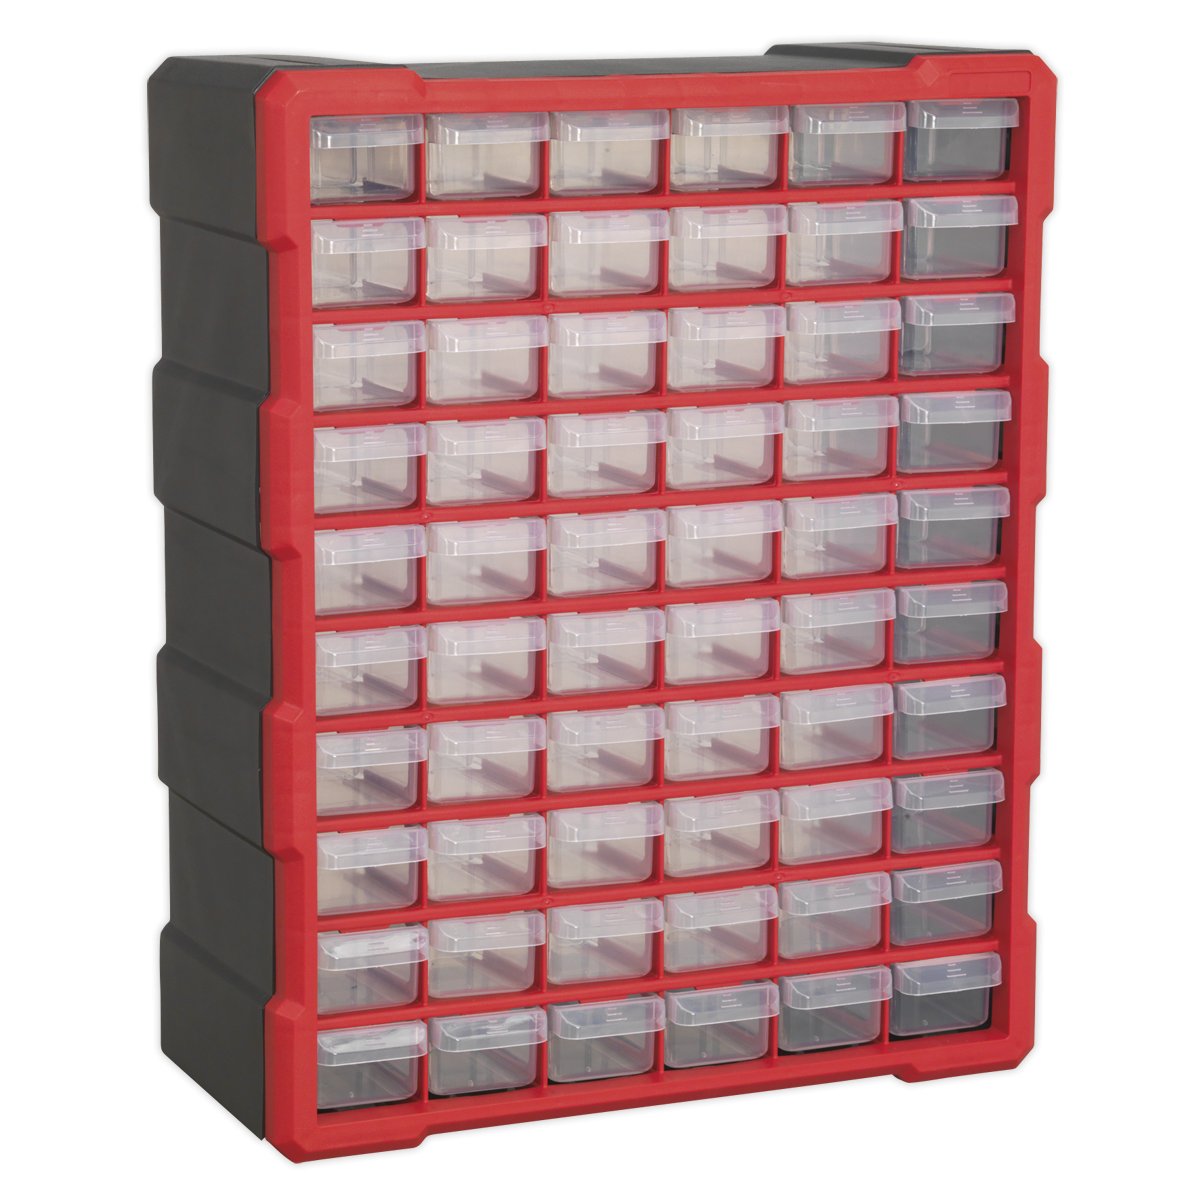 Sealey Apdc60r Cabinet Box 60 Drawer Red Black Product